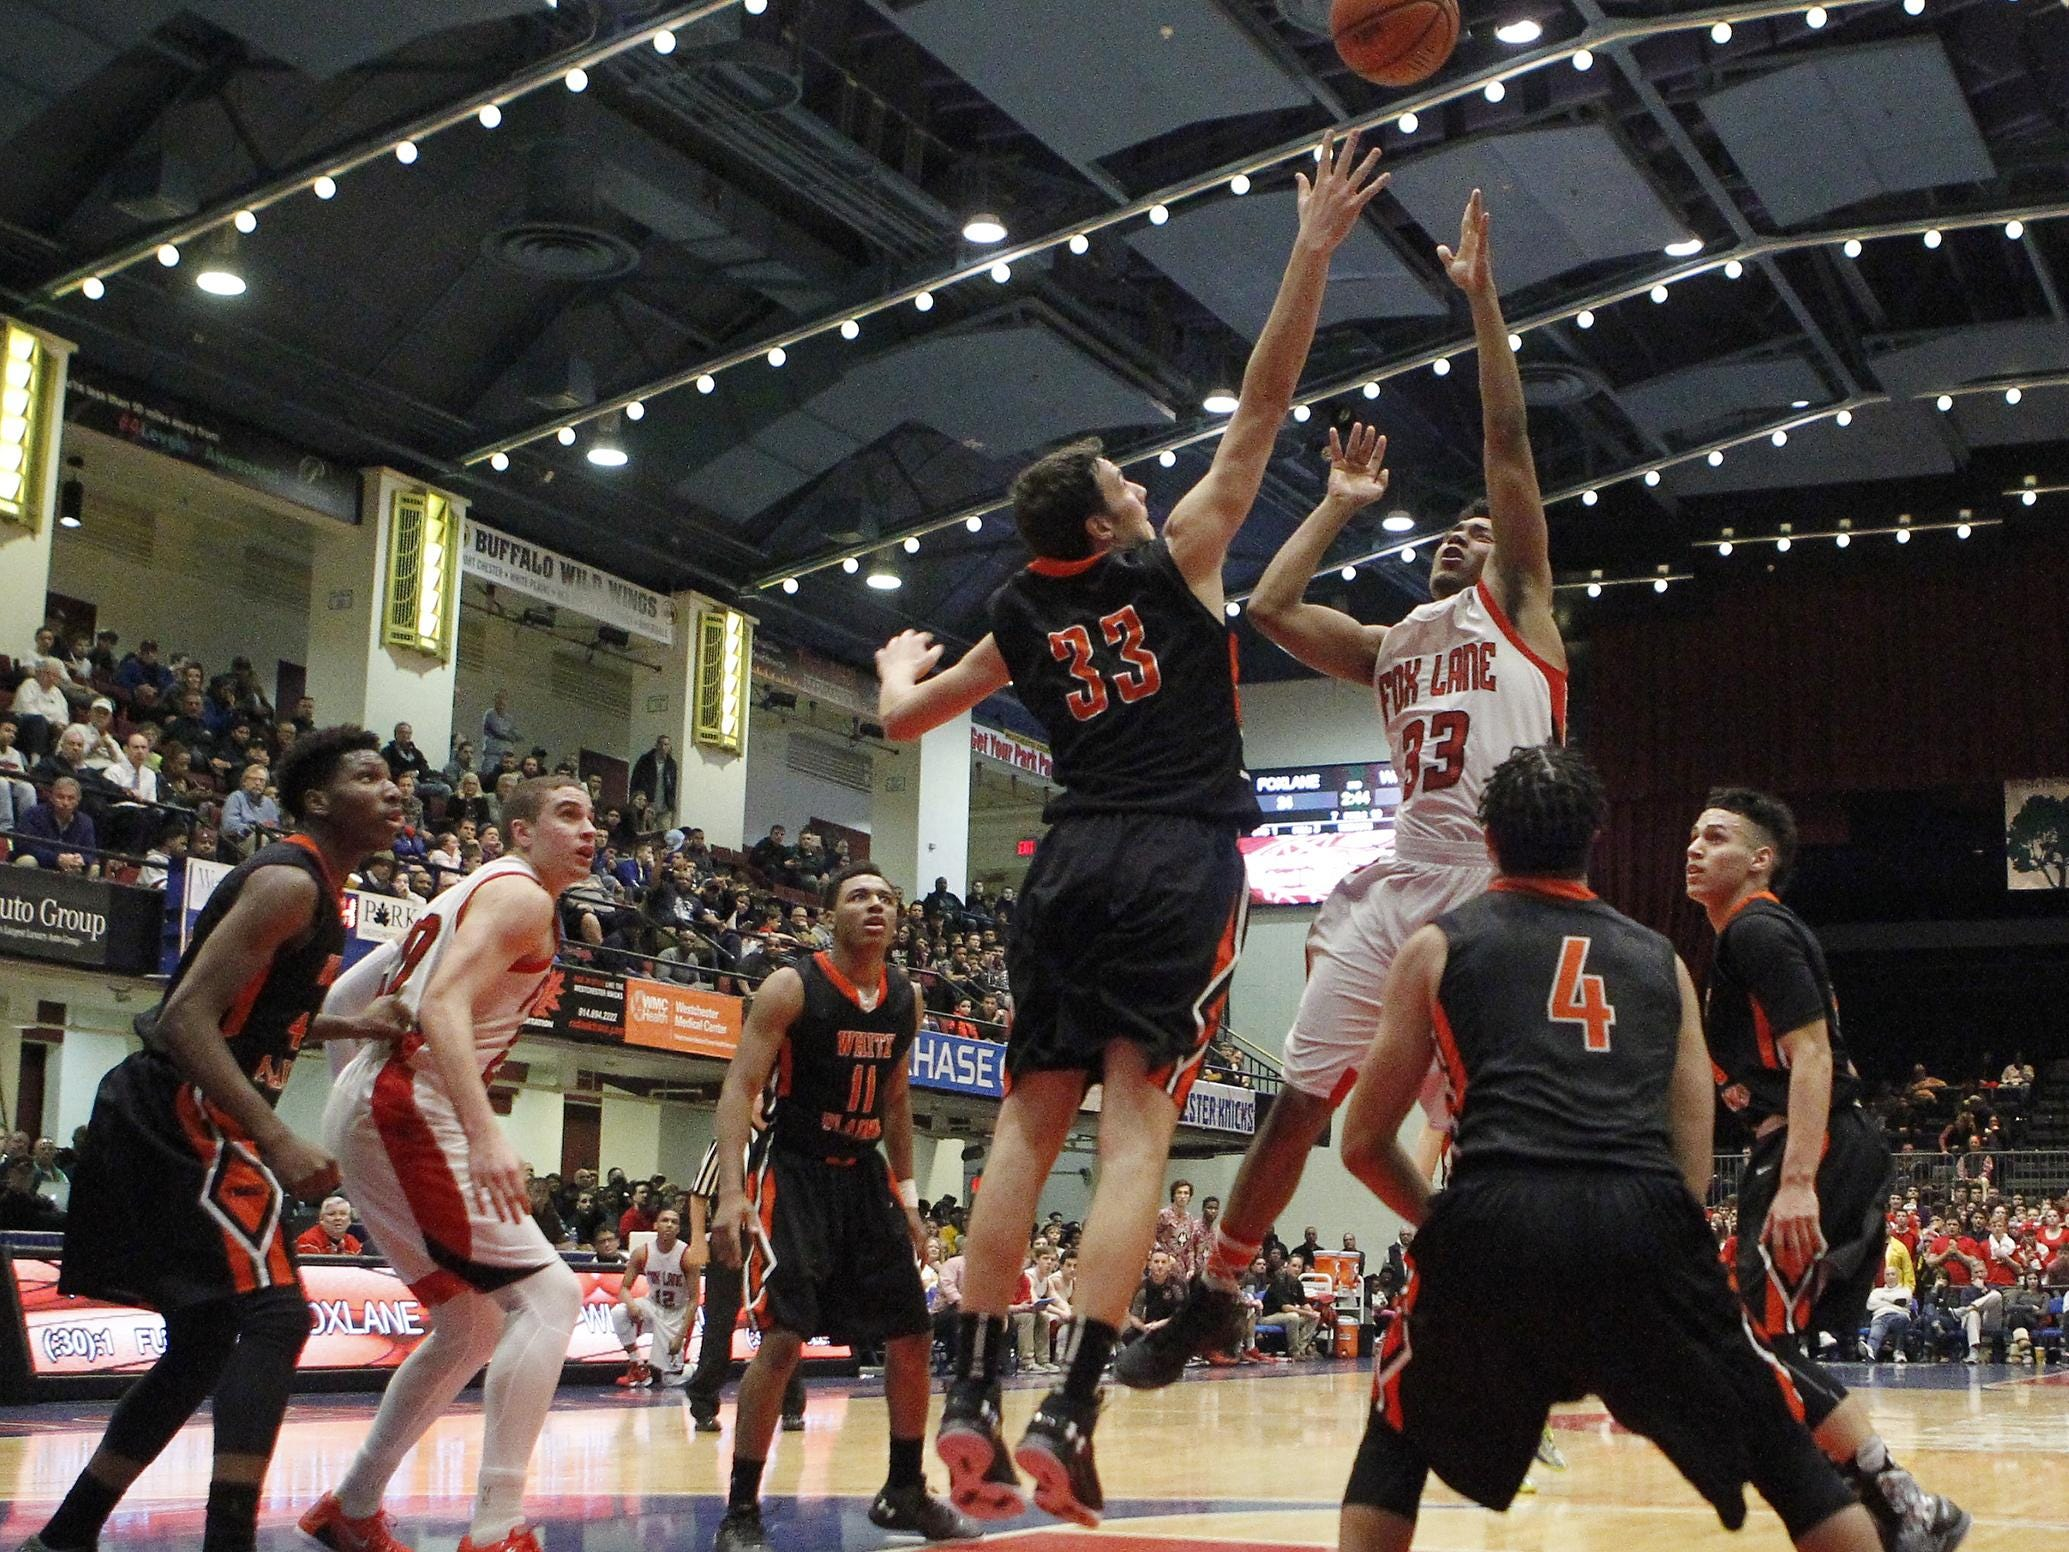 Fox Lane's Julian Francisco (33) goes up against White Plains' Spencer Lodes (33) during the boys Class AA semi-final basketball game at the County Center in White Plains on Friday, February 26, 2016.